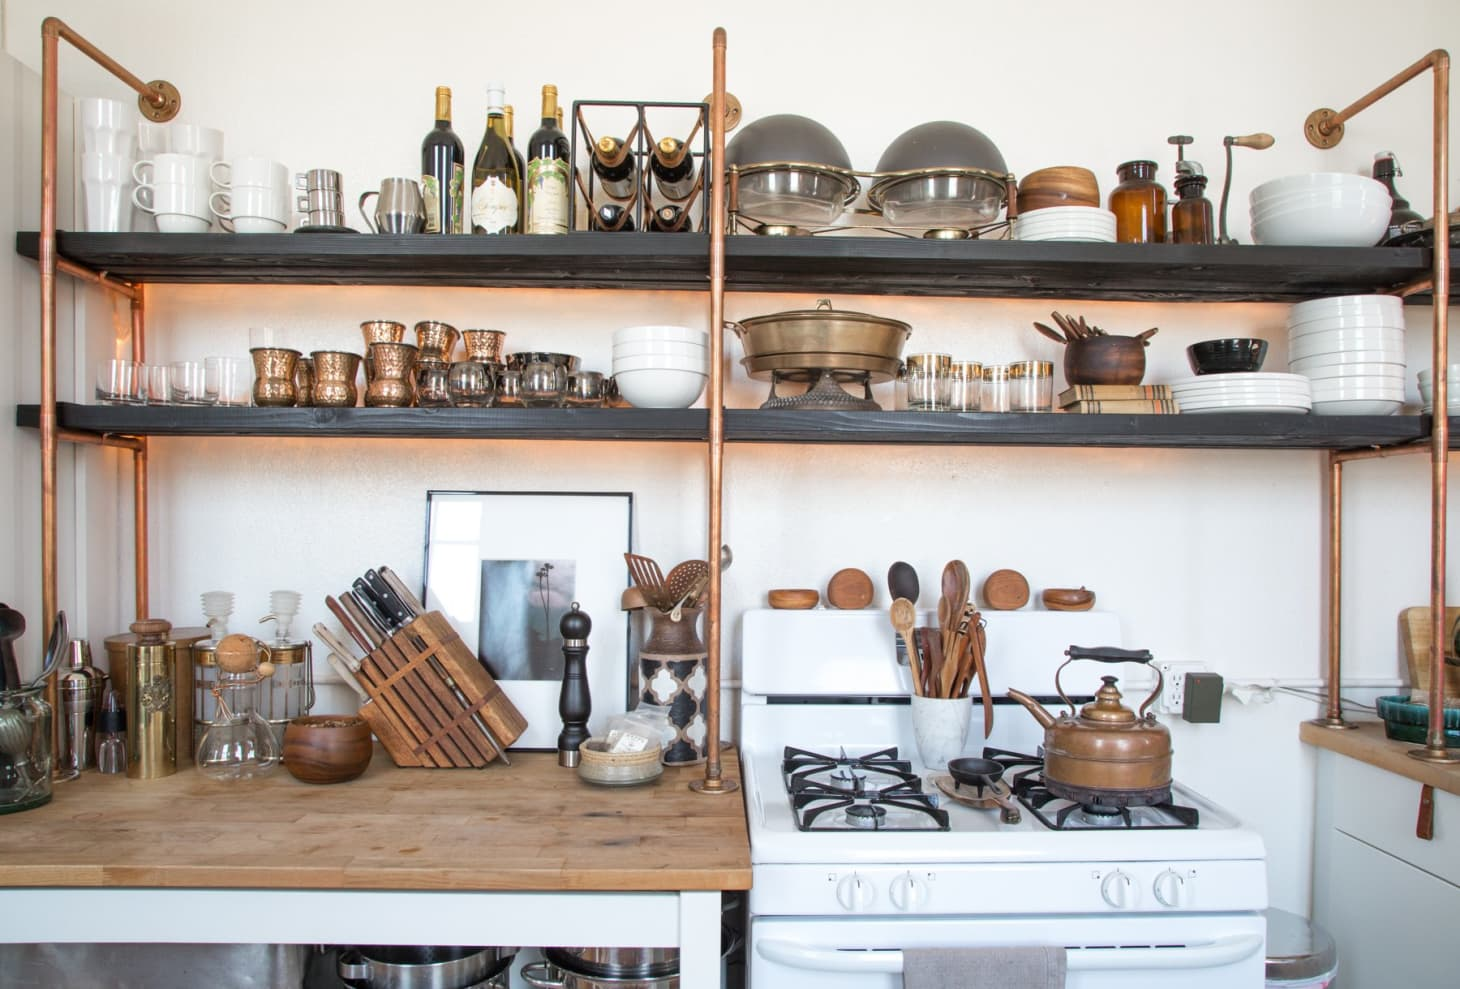 DIY Copper Kitchen Shelves Made with Parts from Home Depot ...